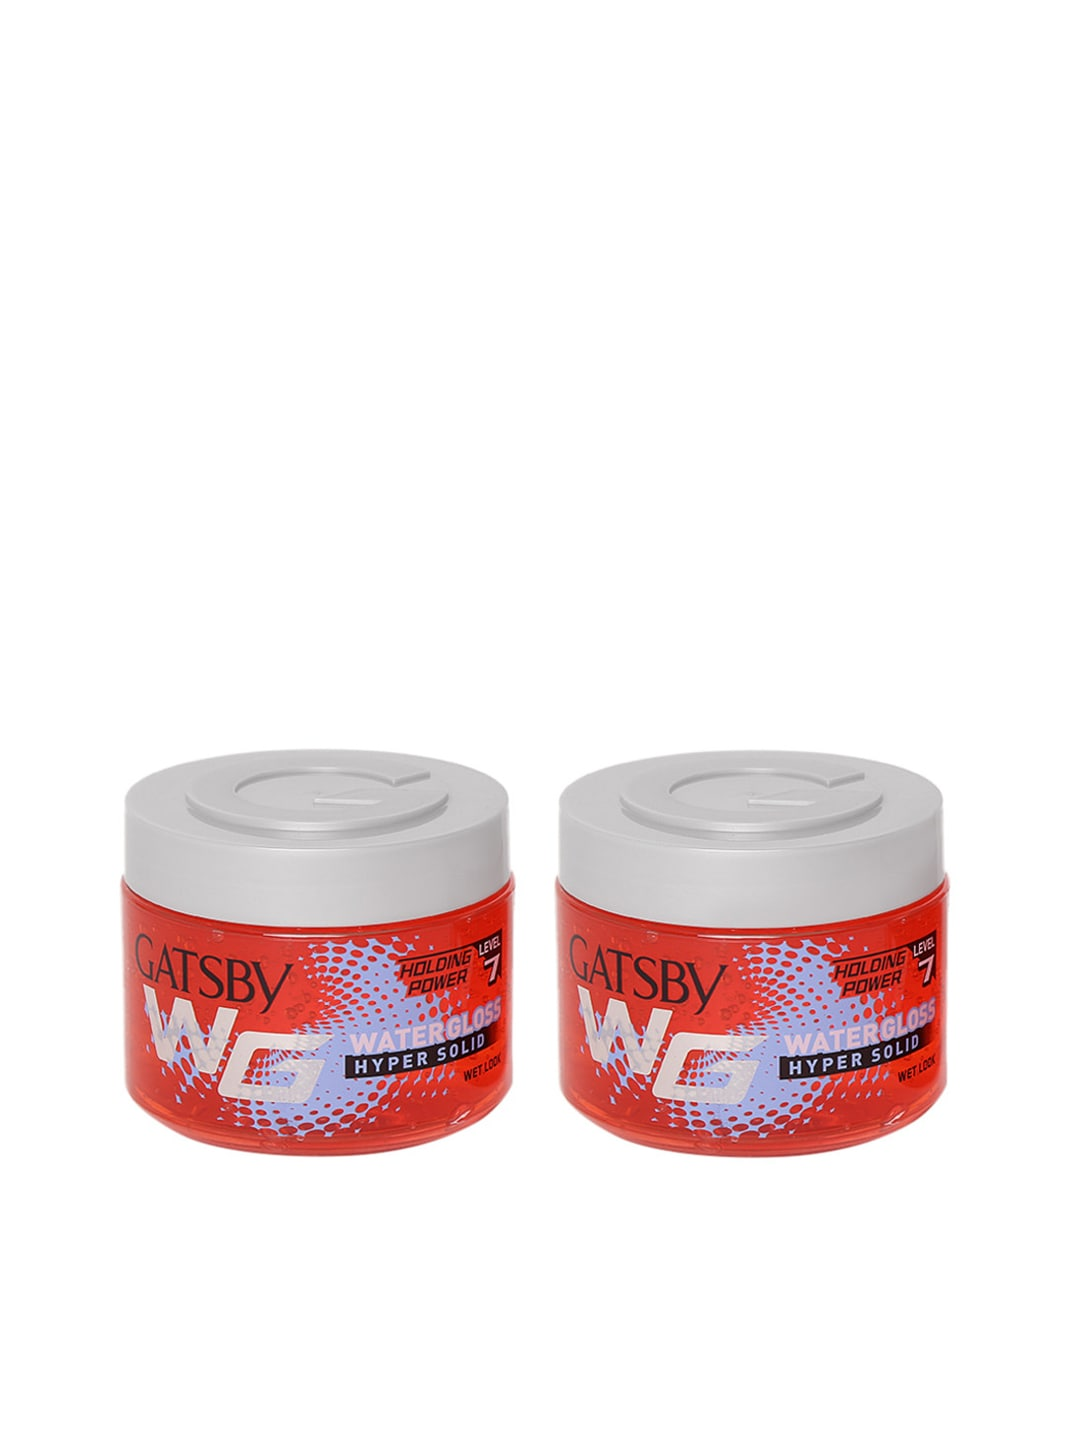 Gatsby Men Set of 2 Water Gloss Hyper Solid Hair Wax image